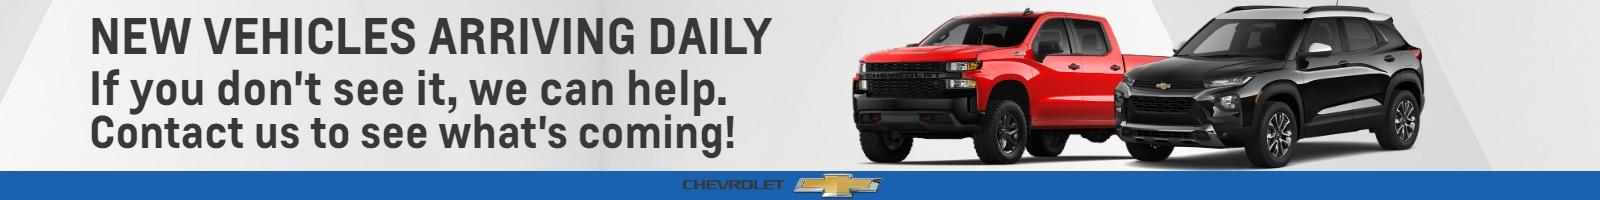 NEW VEHICLES ARRIVING DAILY If you don't see it, we can help. Contact us to see what's coming!